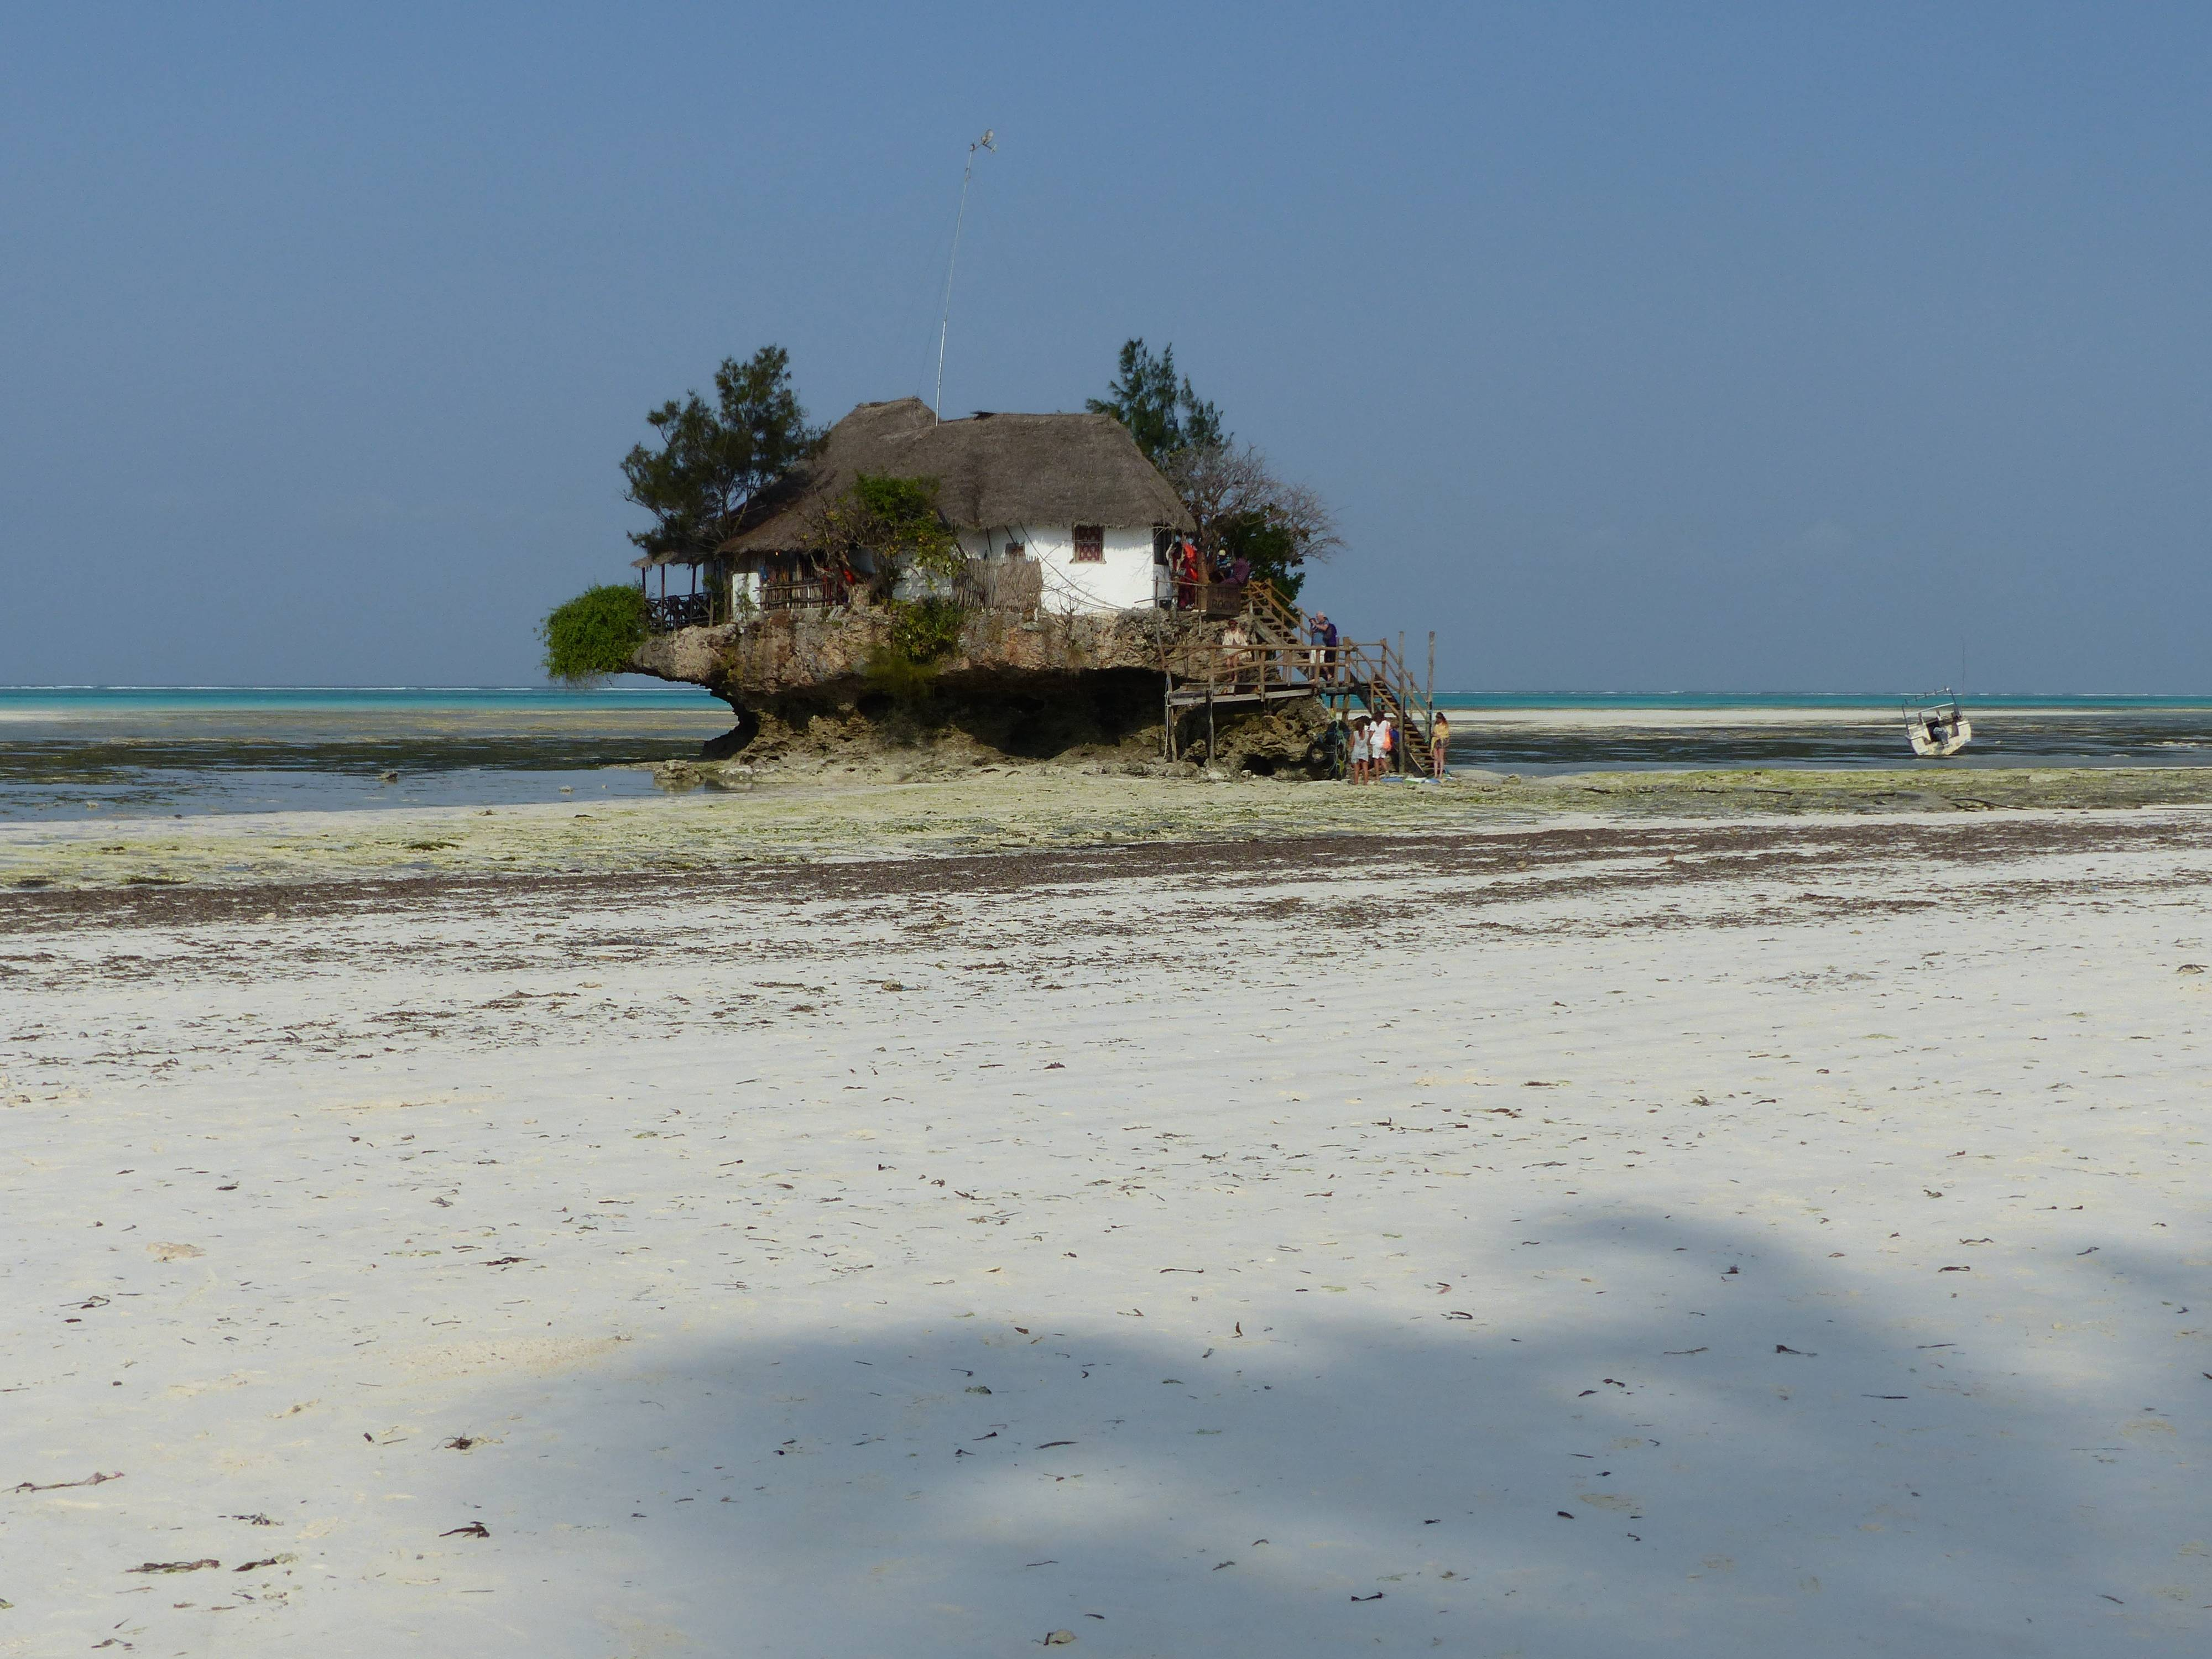 Photo 2: TANZANIE ZANZIBAR - THE ROCK